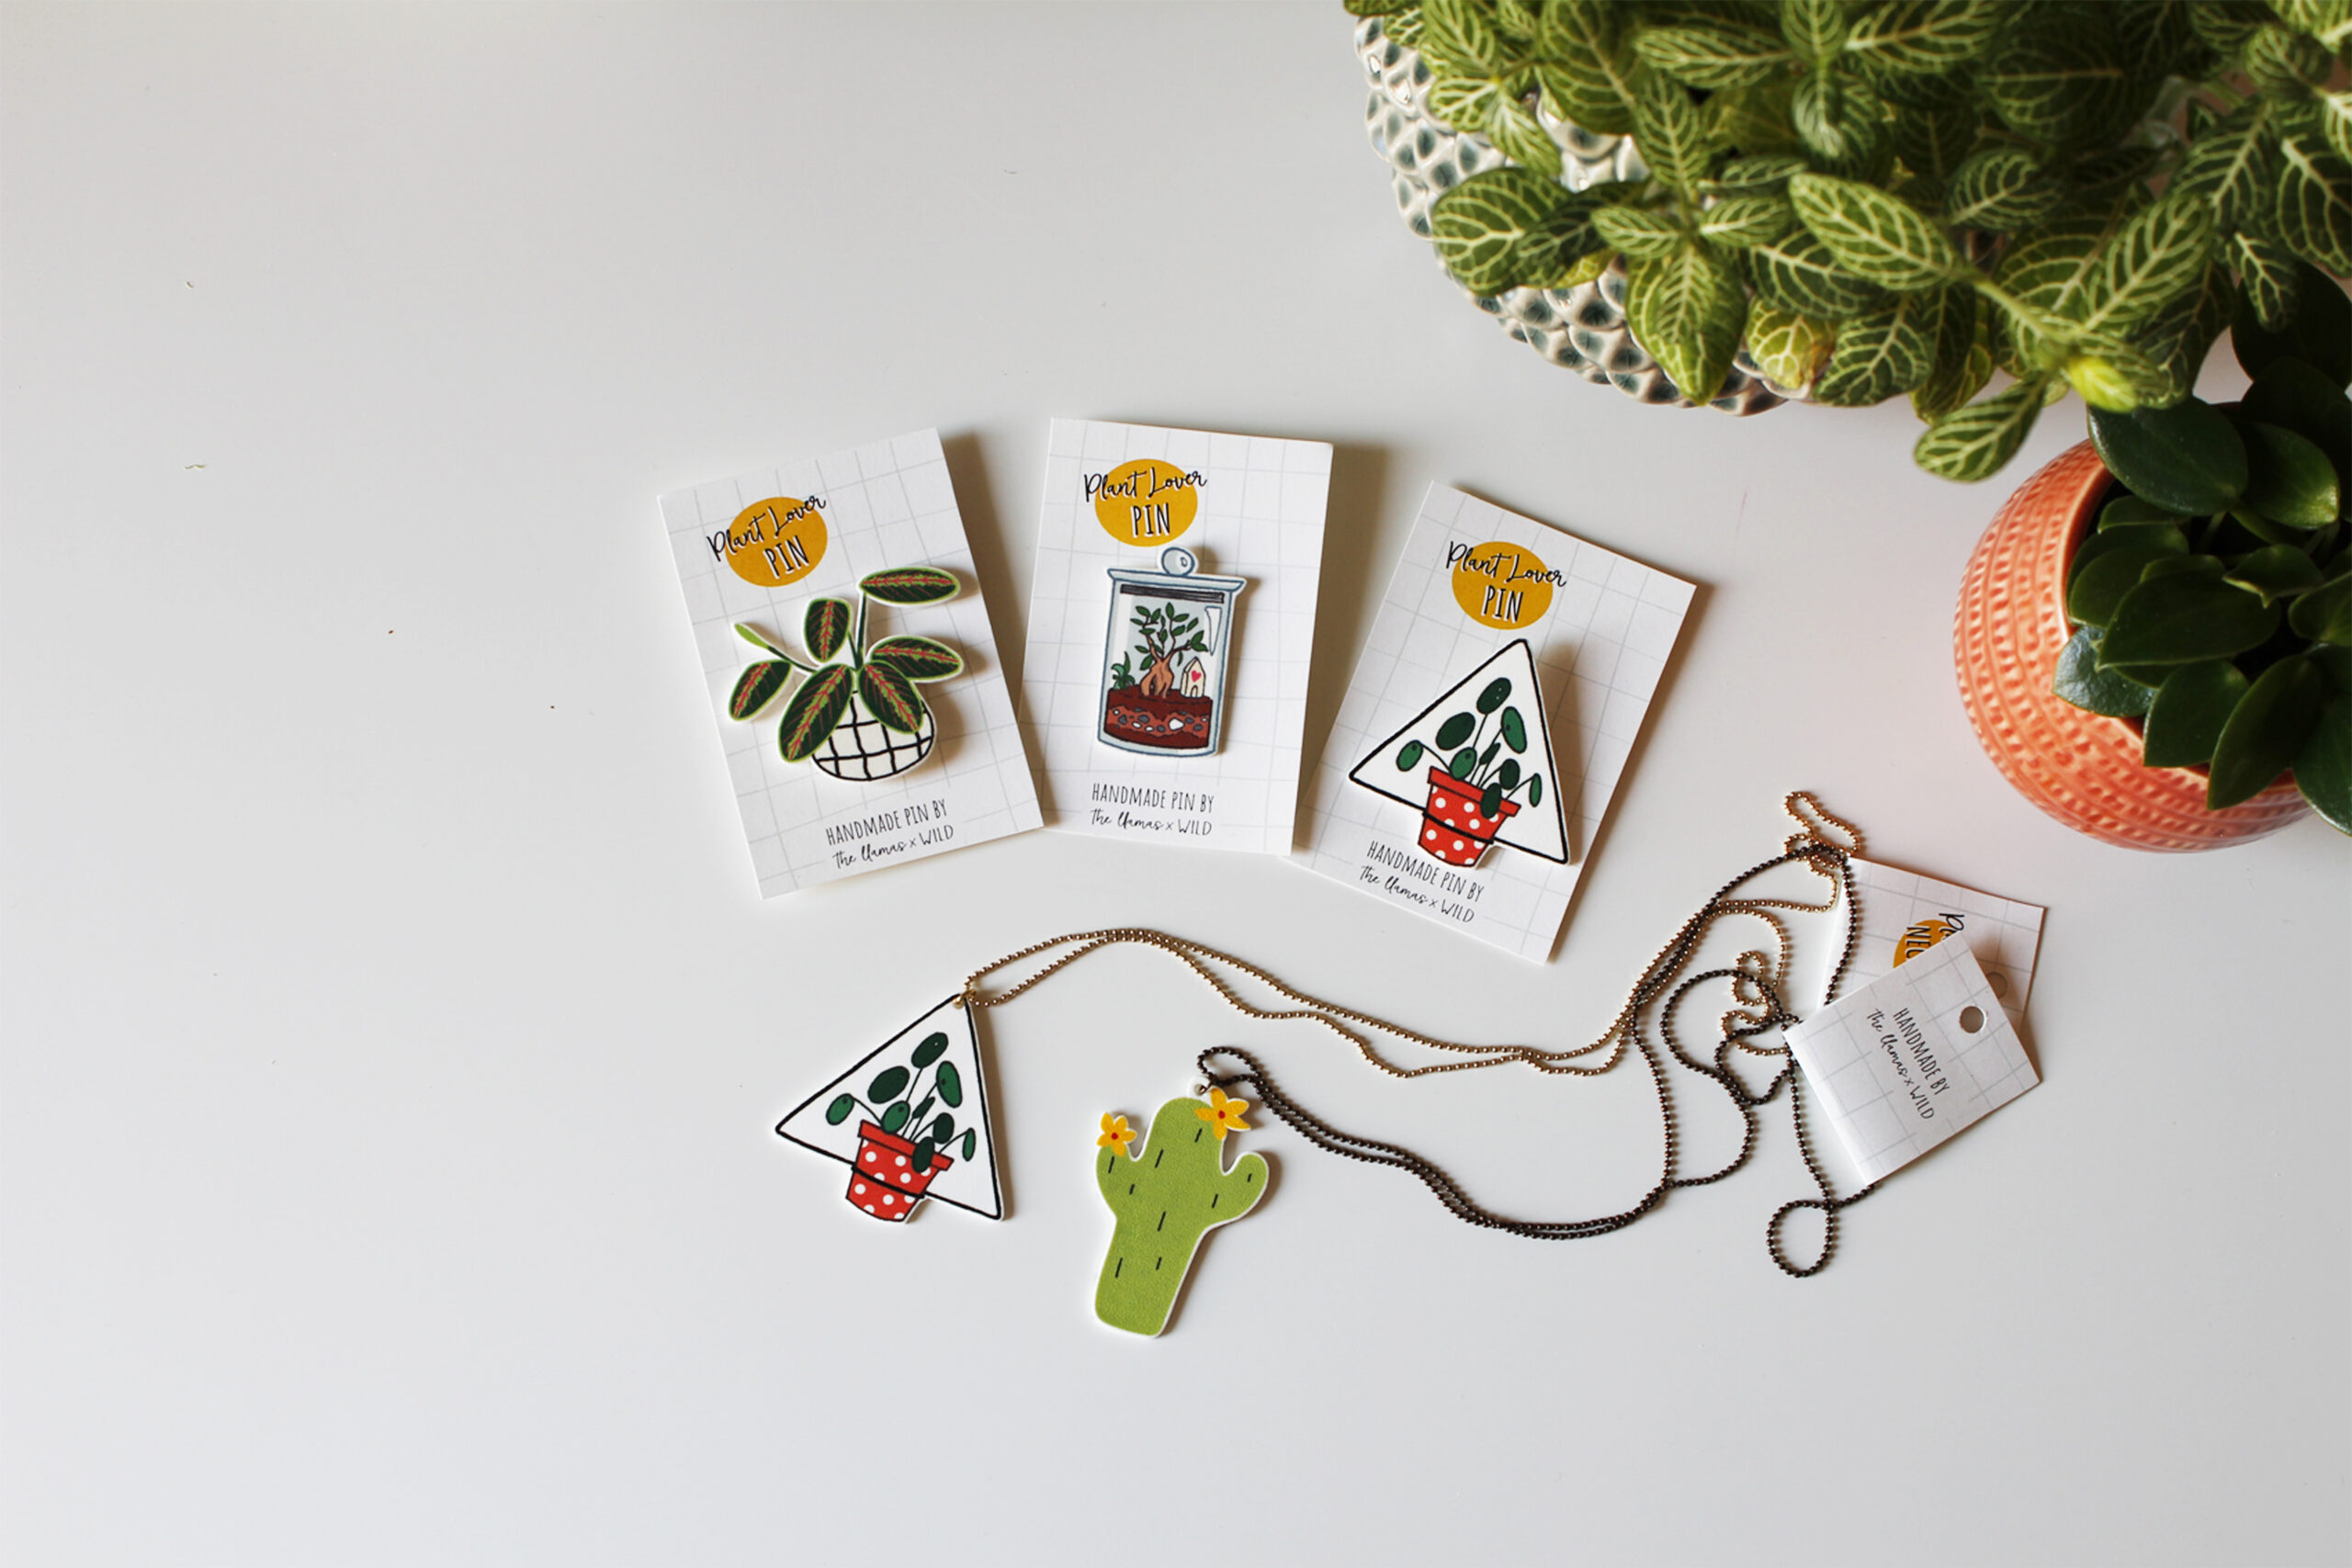 the llamas x wild milano, plant lovers pins and necklaces